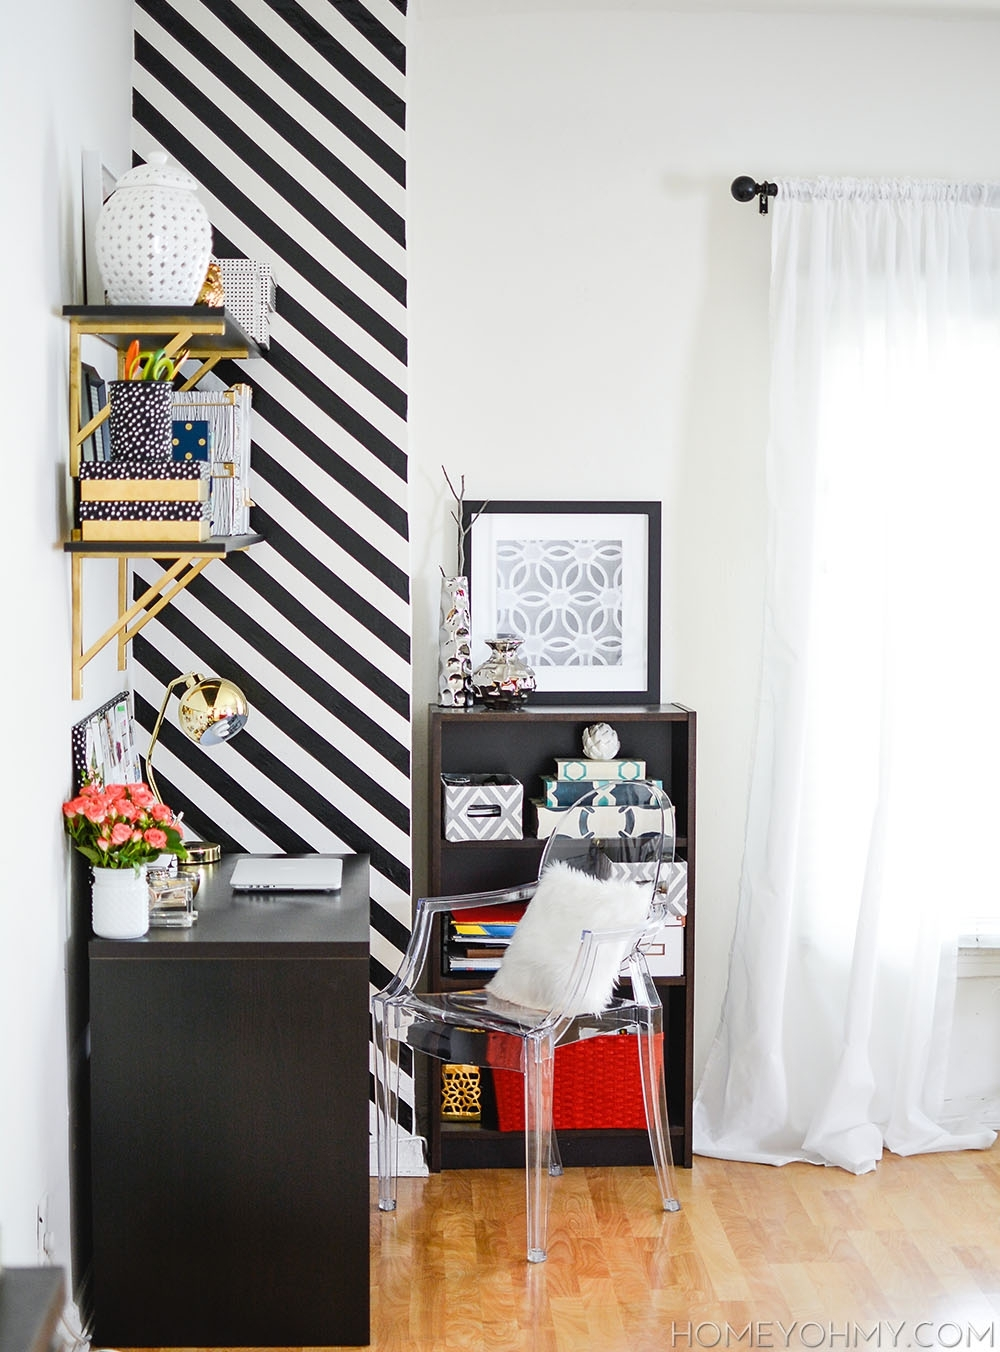 How To Create A Striped Accent Wall Without Paint – With Newest Stripe Wall Accents (View 14 of 15)